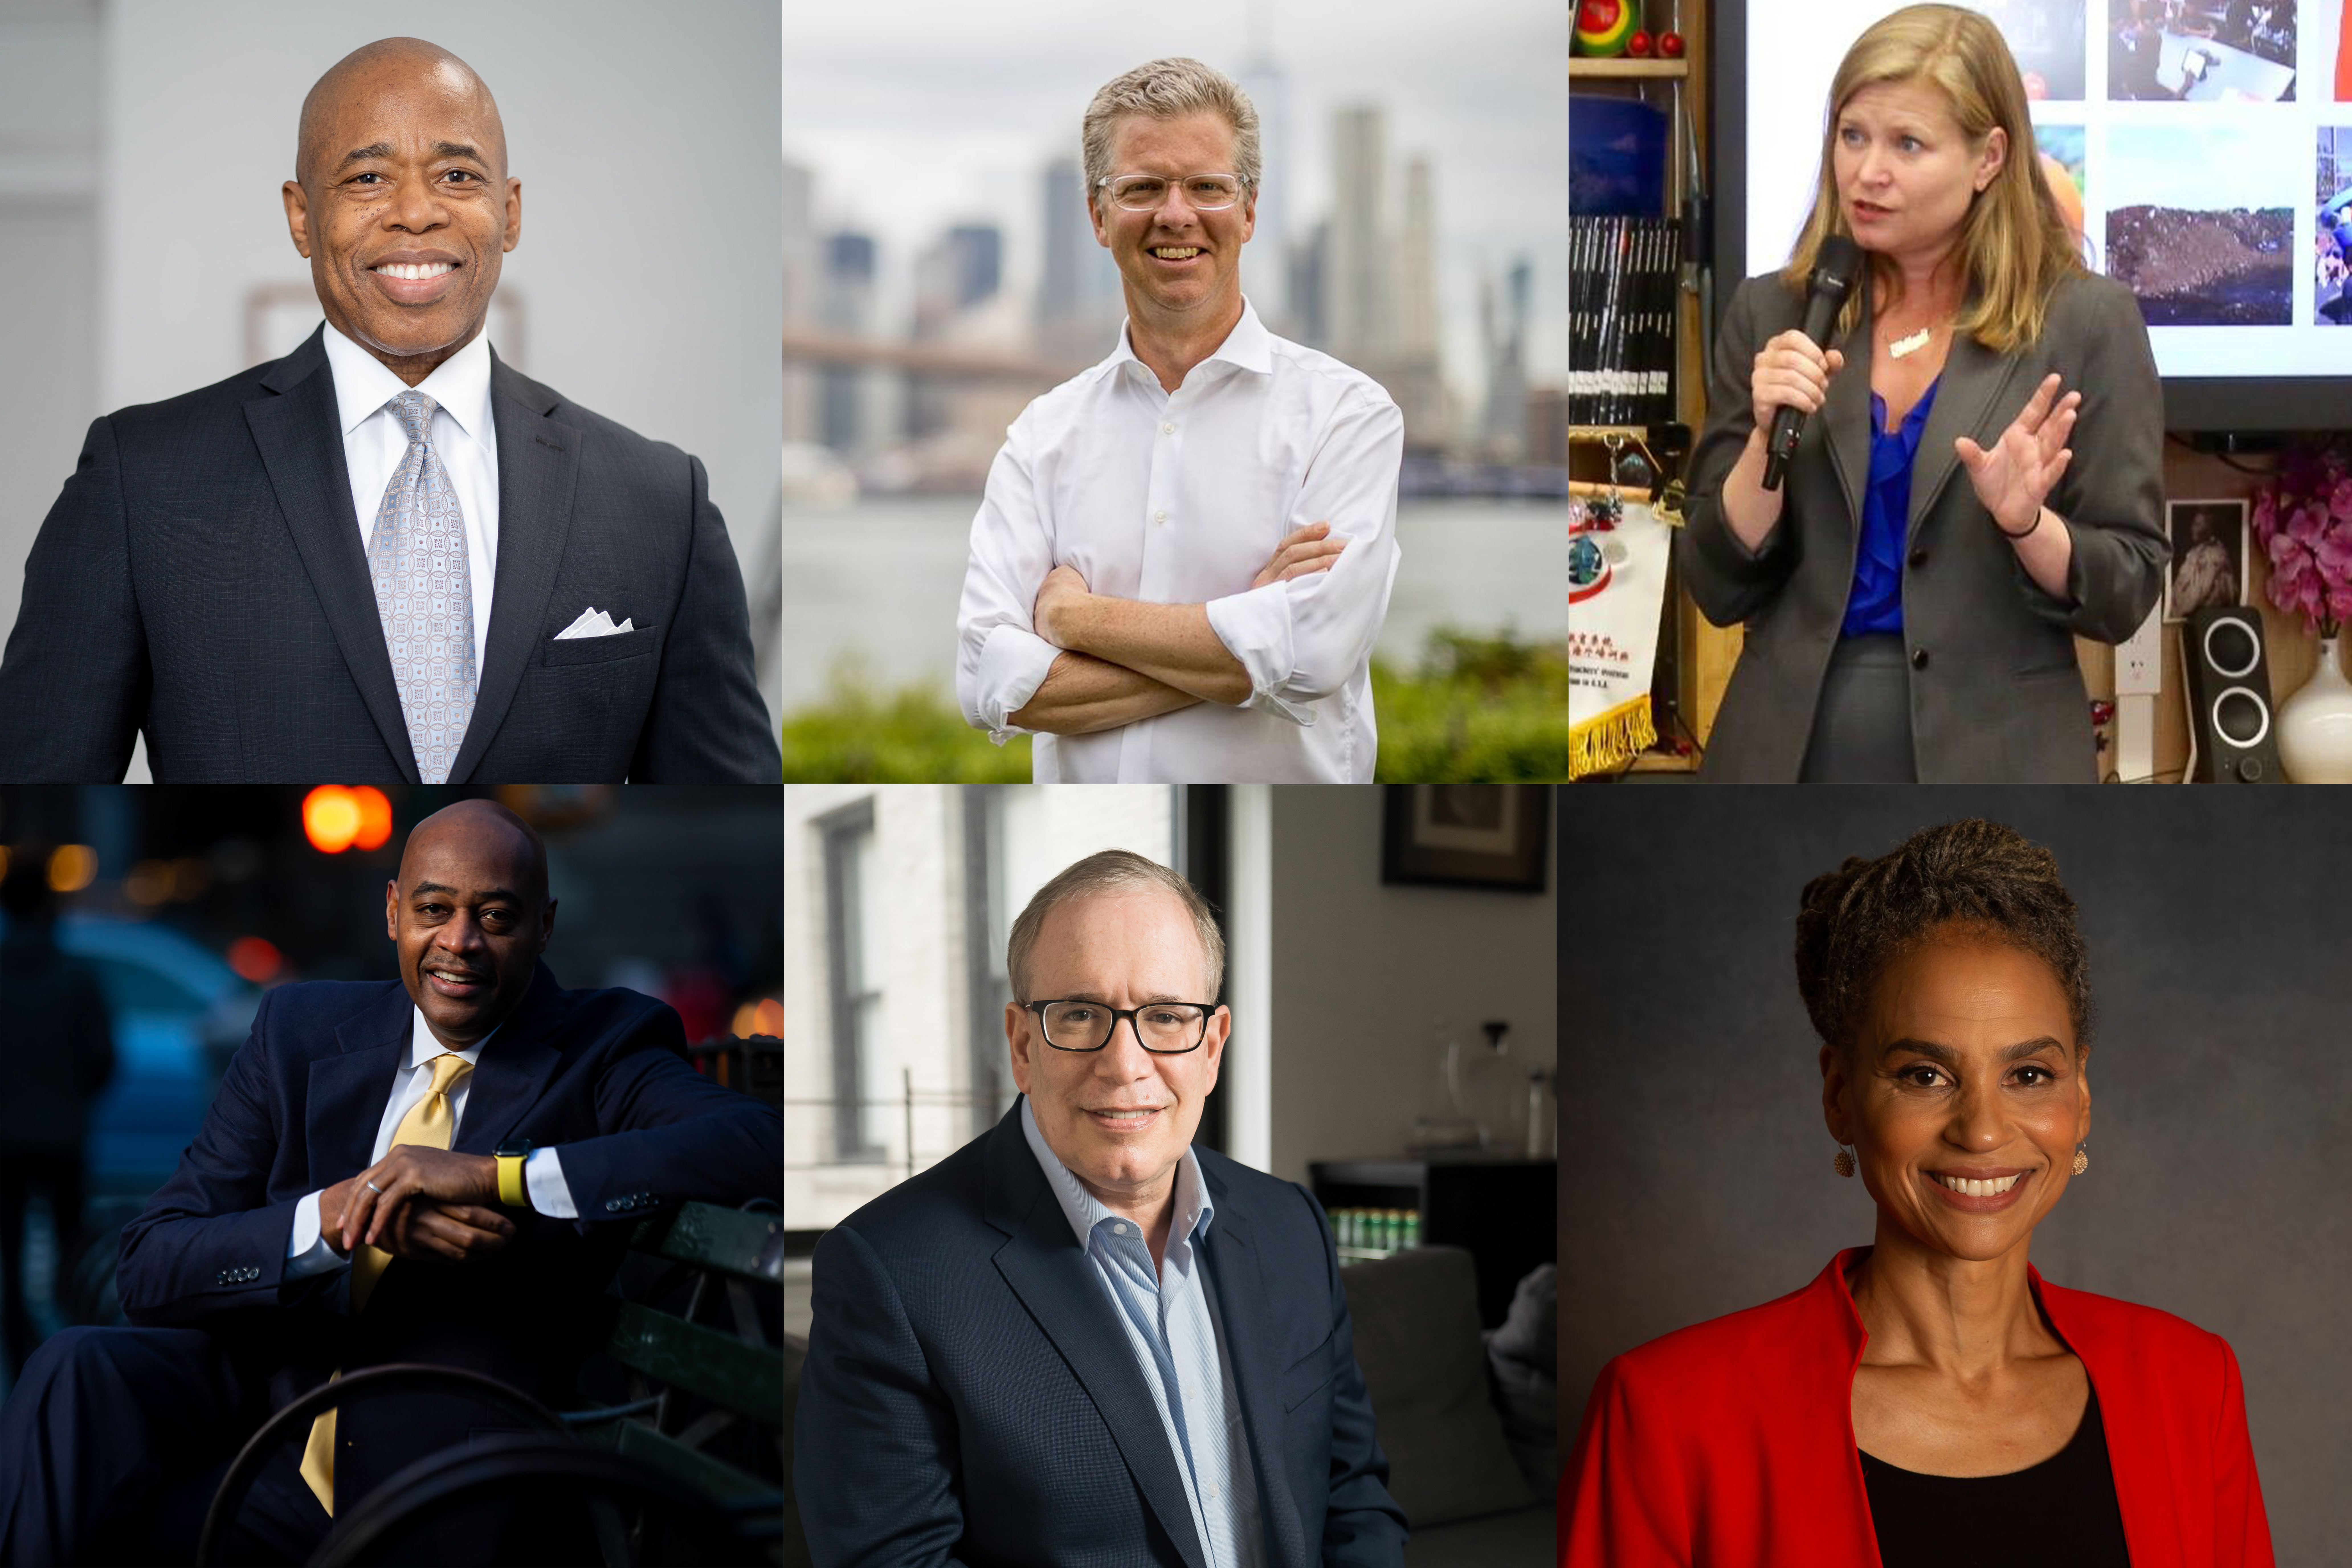 (Clockwise from top left) A collage of portraits of New York City mayoral candidates Eric Adams, Shaun Donovan, Kathryn Garcia, Maya Wiley, Scott Stringer and Ray McGuire.